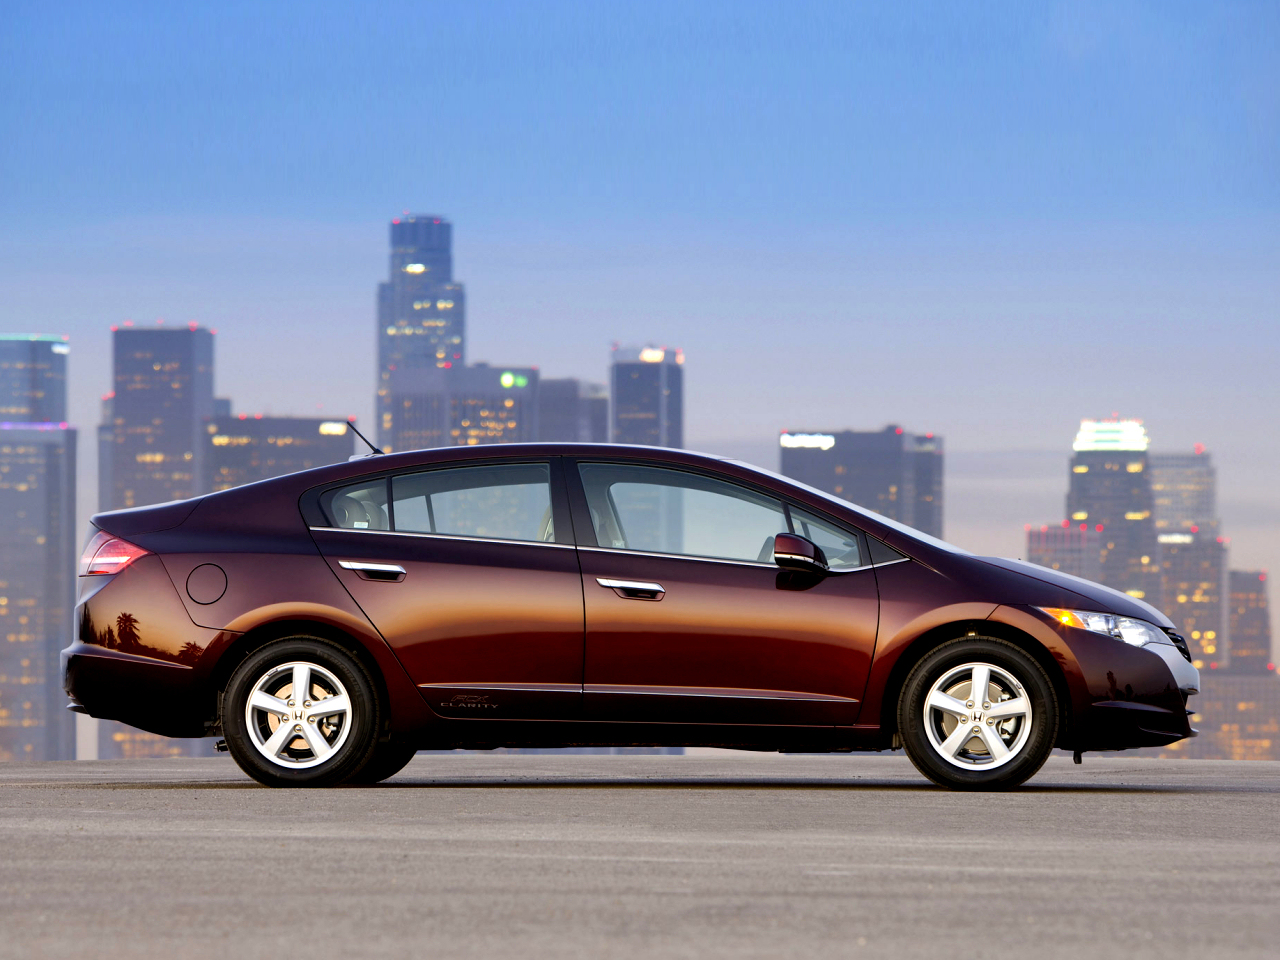 wallpaper 1280x960: Honda Clarity Fuel Cell Vehicle